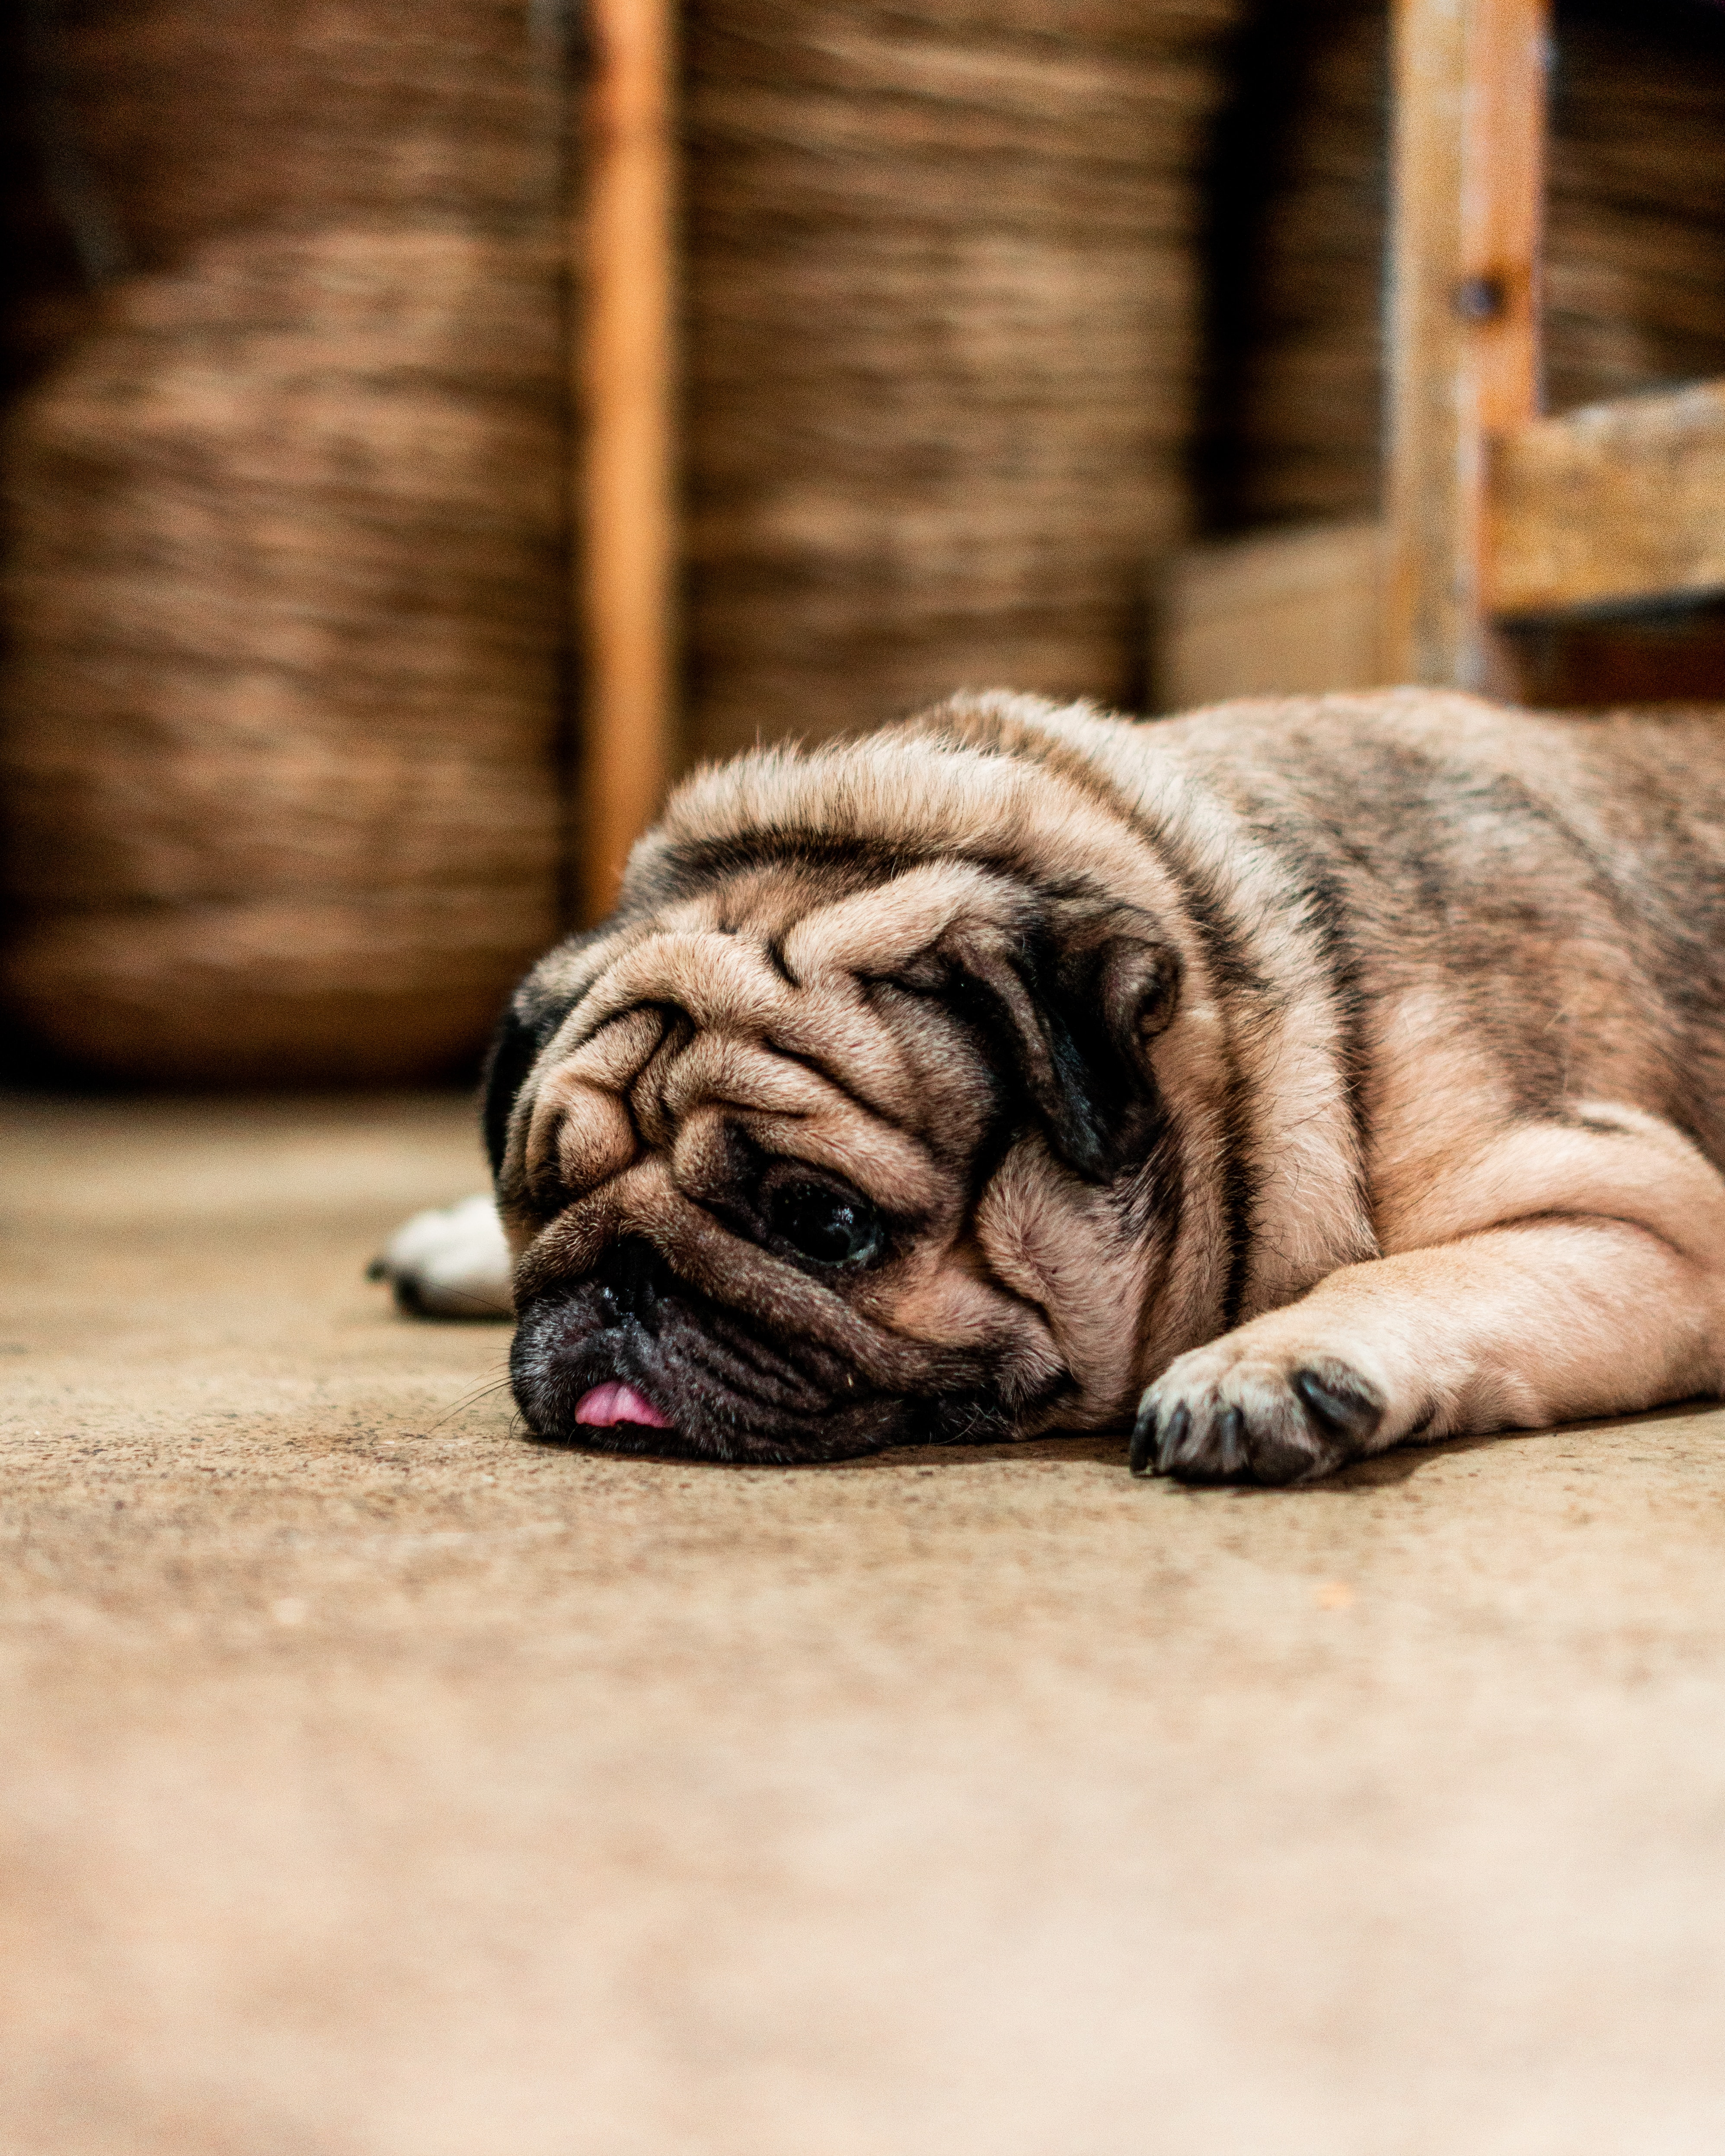 114827 download wallpaper Animals, Pug, Dog, Protruding Tongue, Tongue Stuck Out, Sadness, Sorrow, Pet screensavers and pictures for free